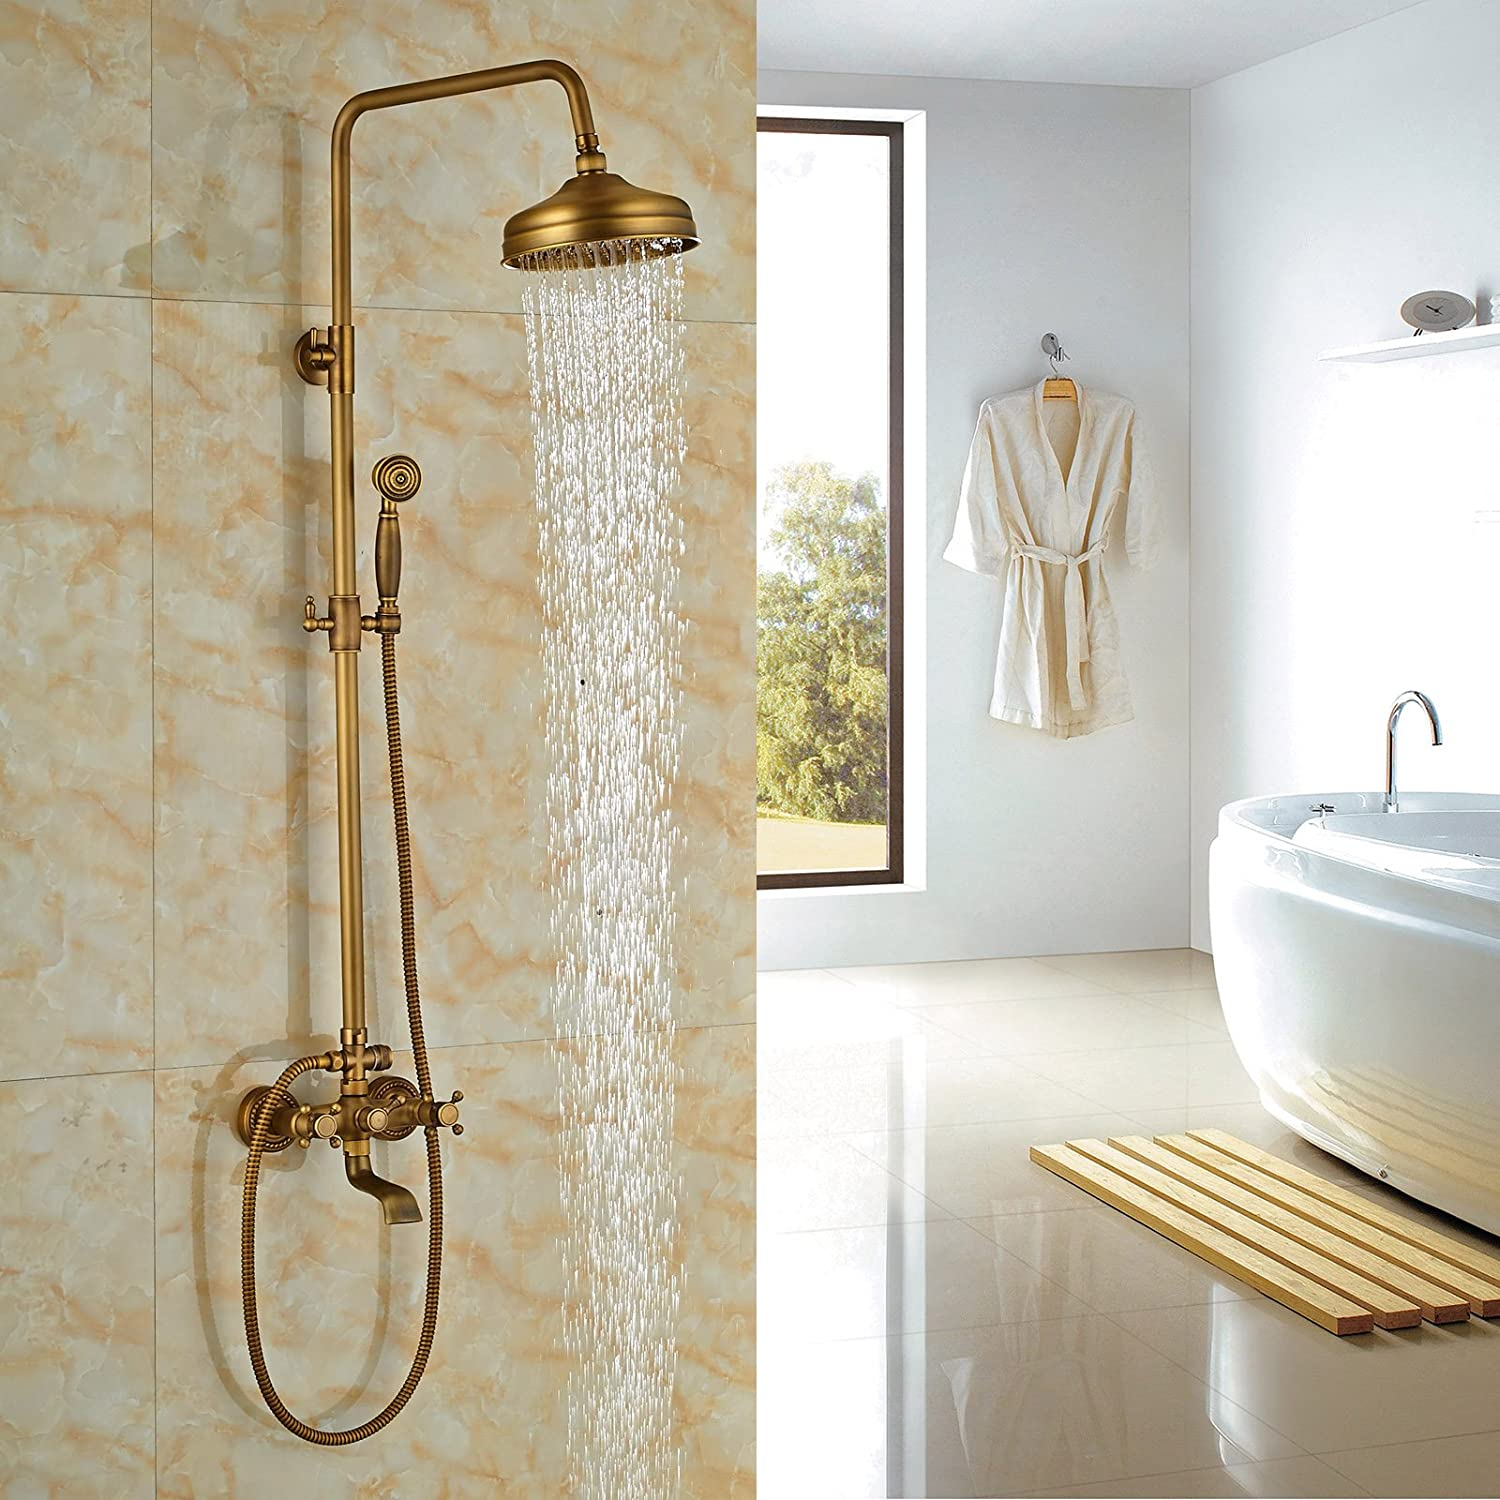 Rozin Wall Mounted Bathroom Rainfall Shower Set Tub Mixer Tap With Hand  Sprayer Antique Brass     Amazon.com